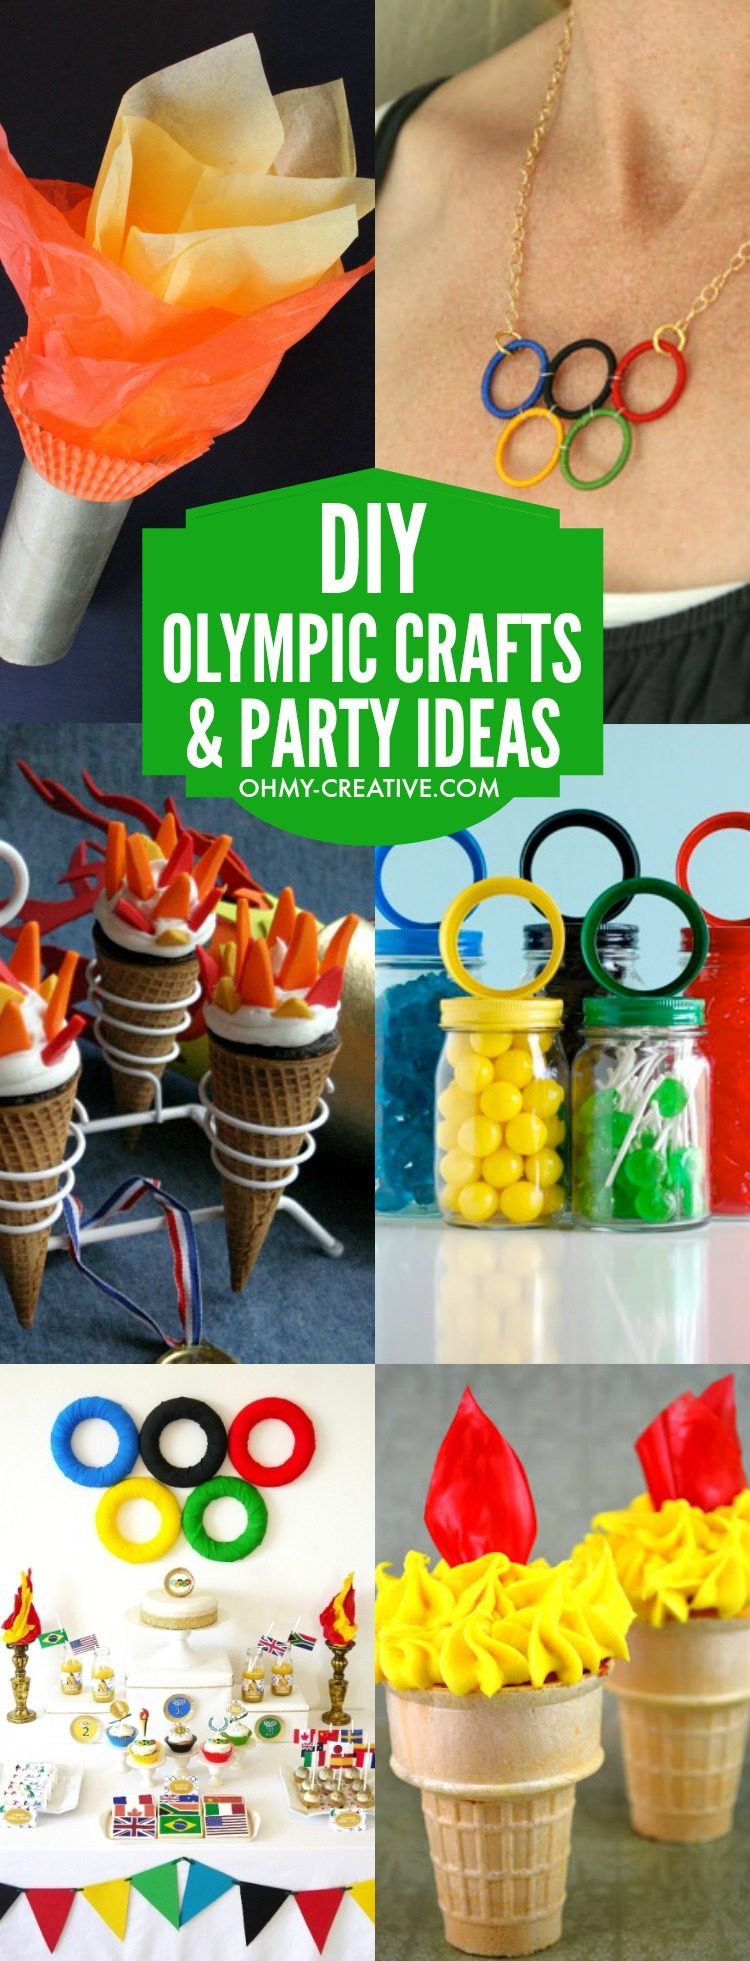 winter party craft ideas diy olympic crafts and ideas oh my creative 5738